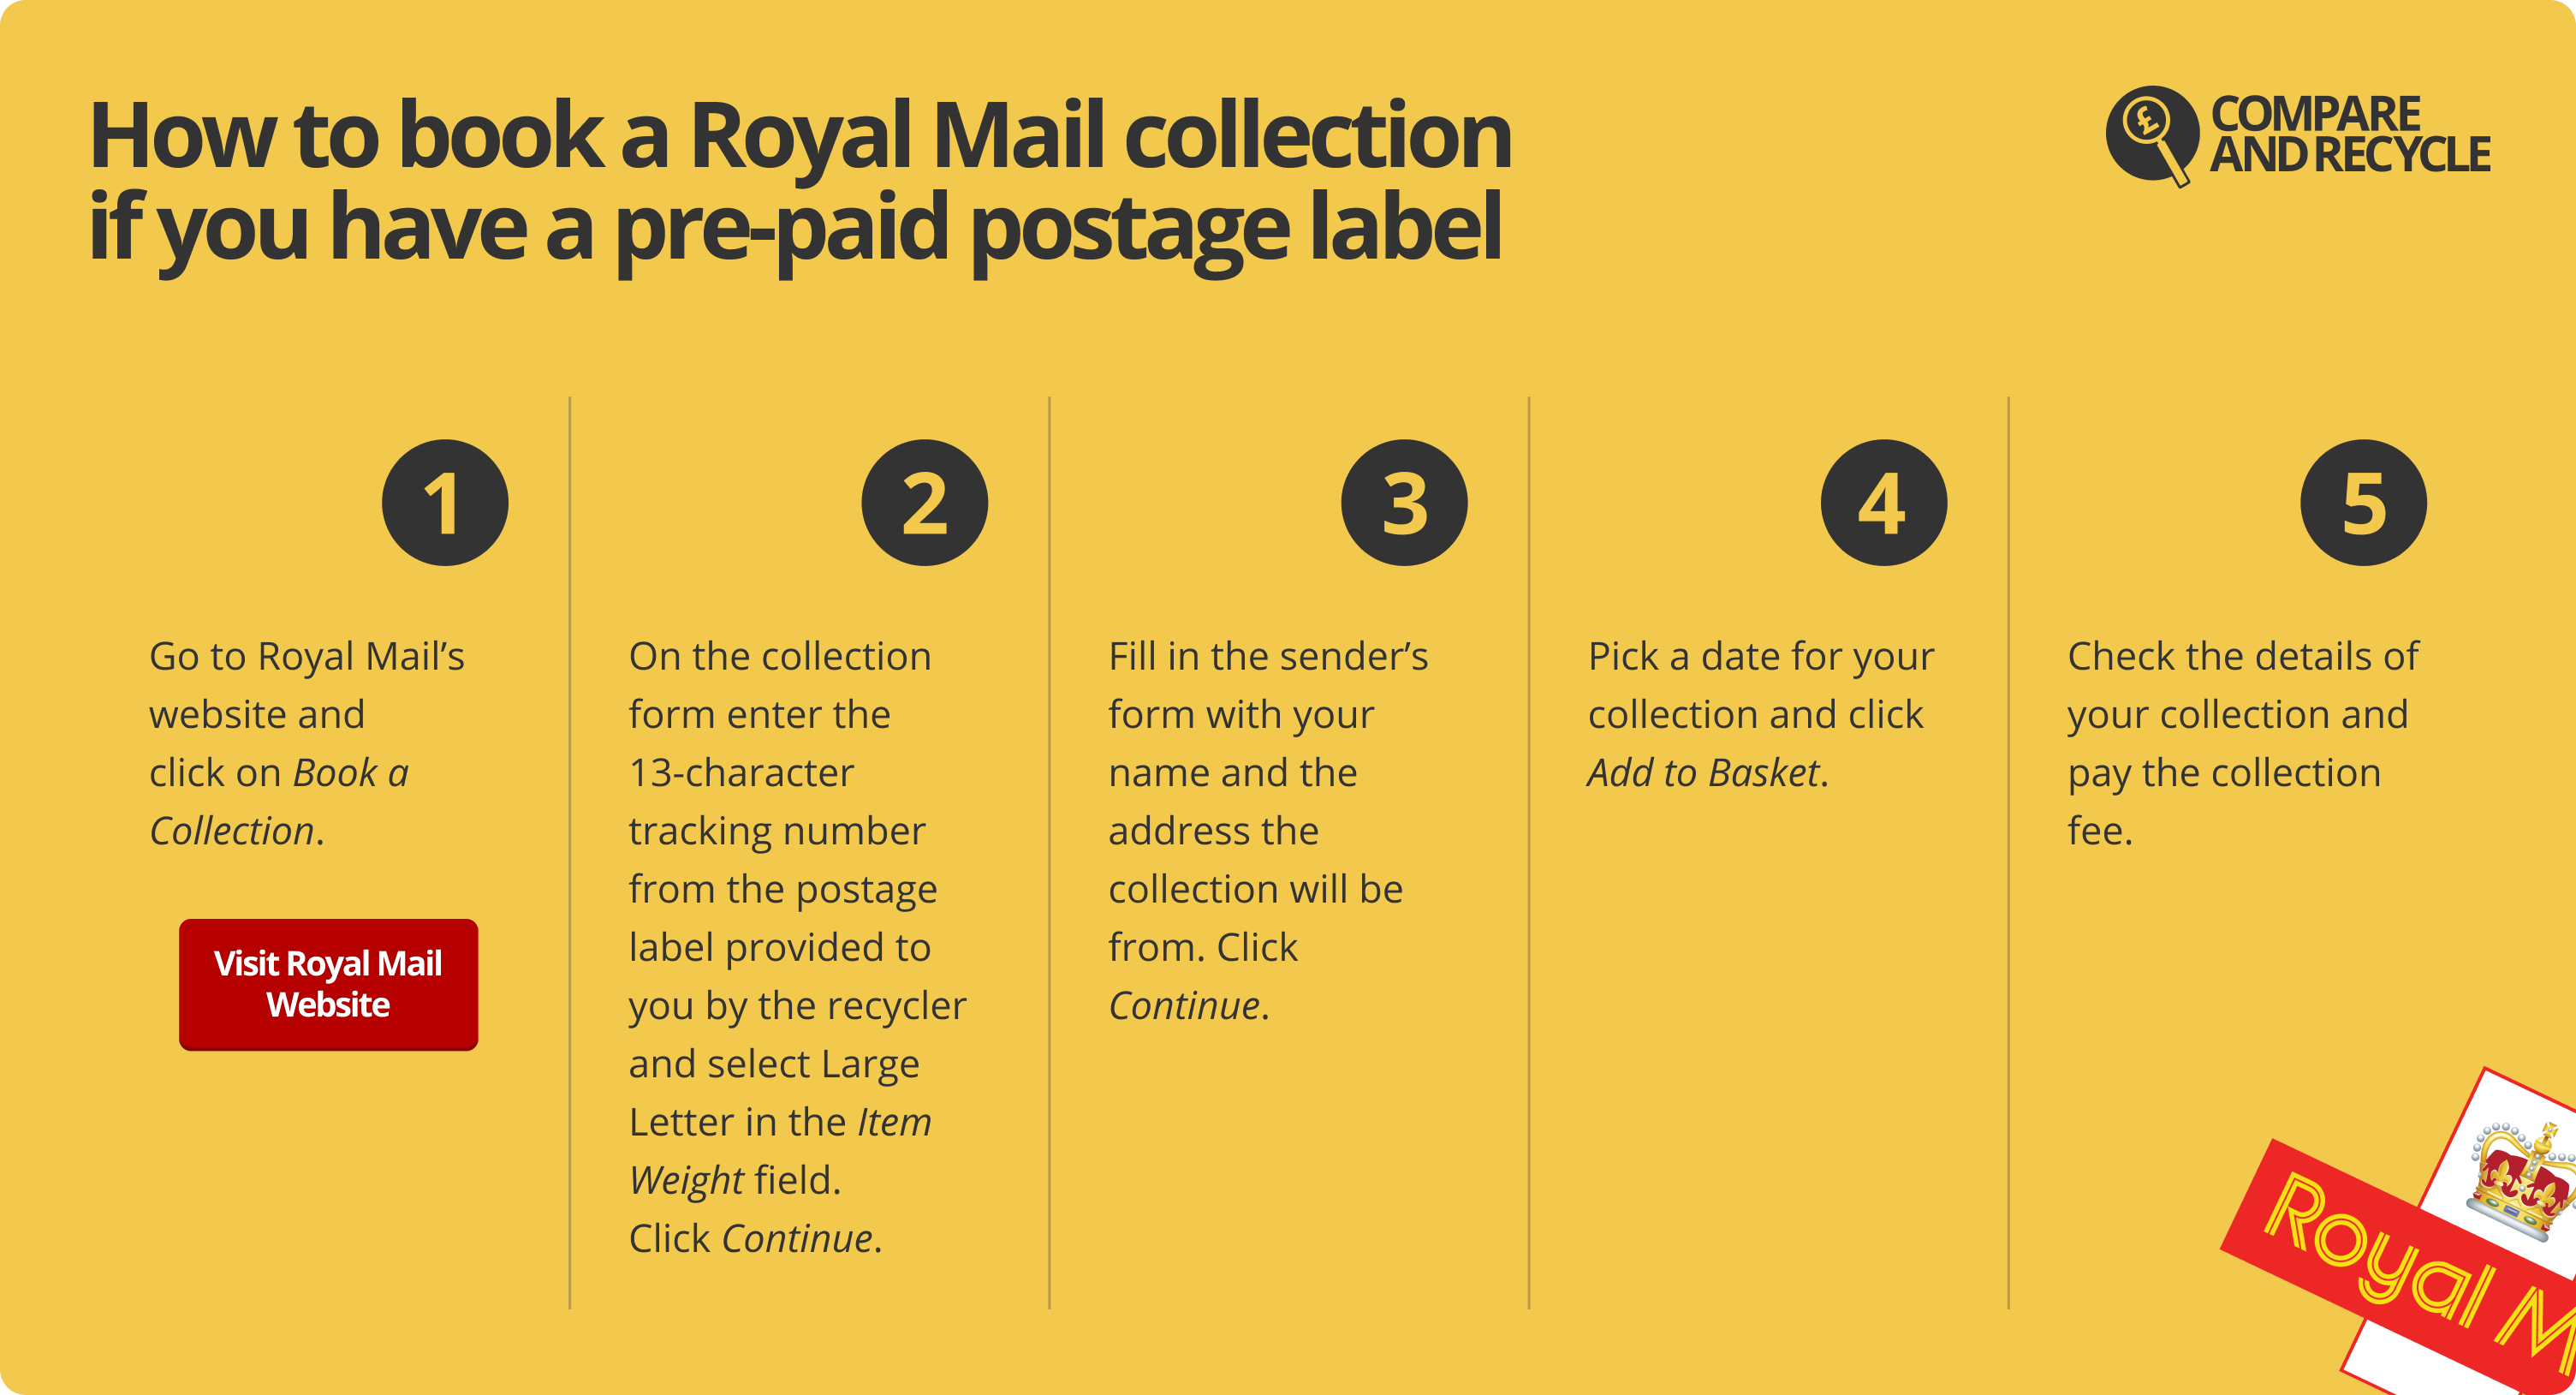 How To Book a Collection with Royal Mail